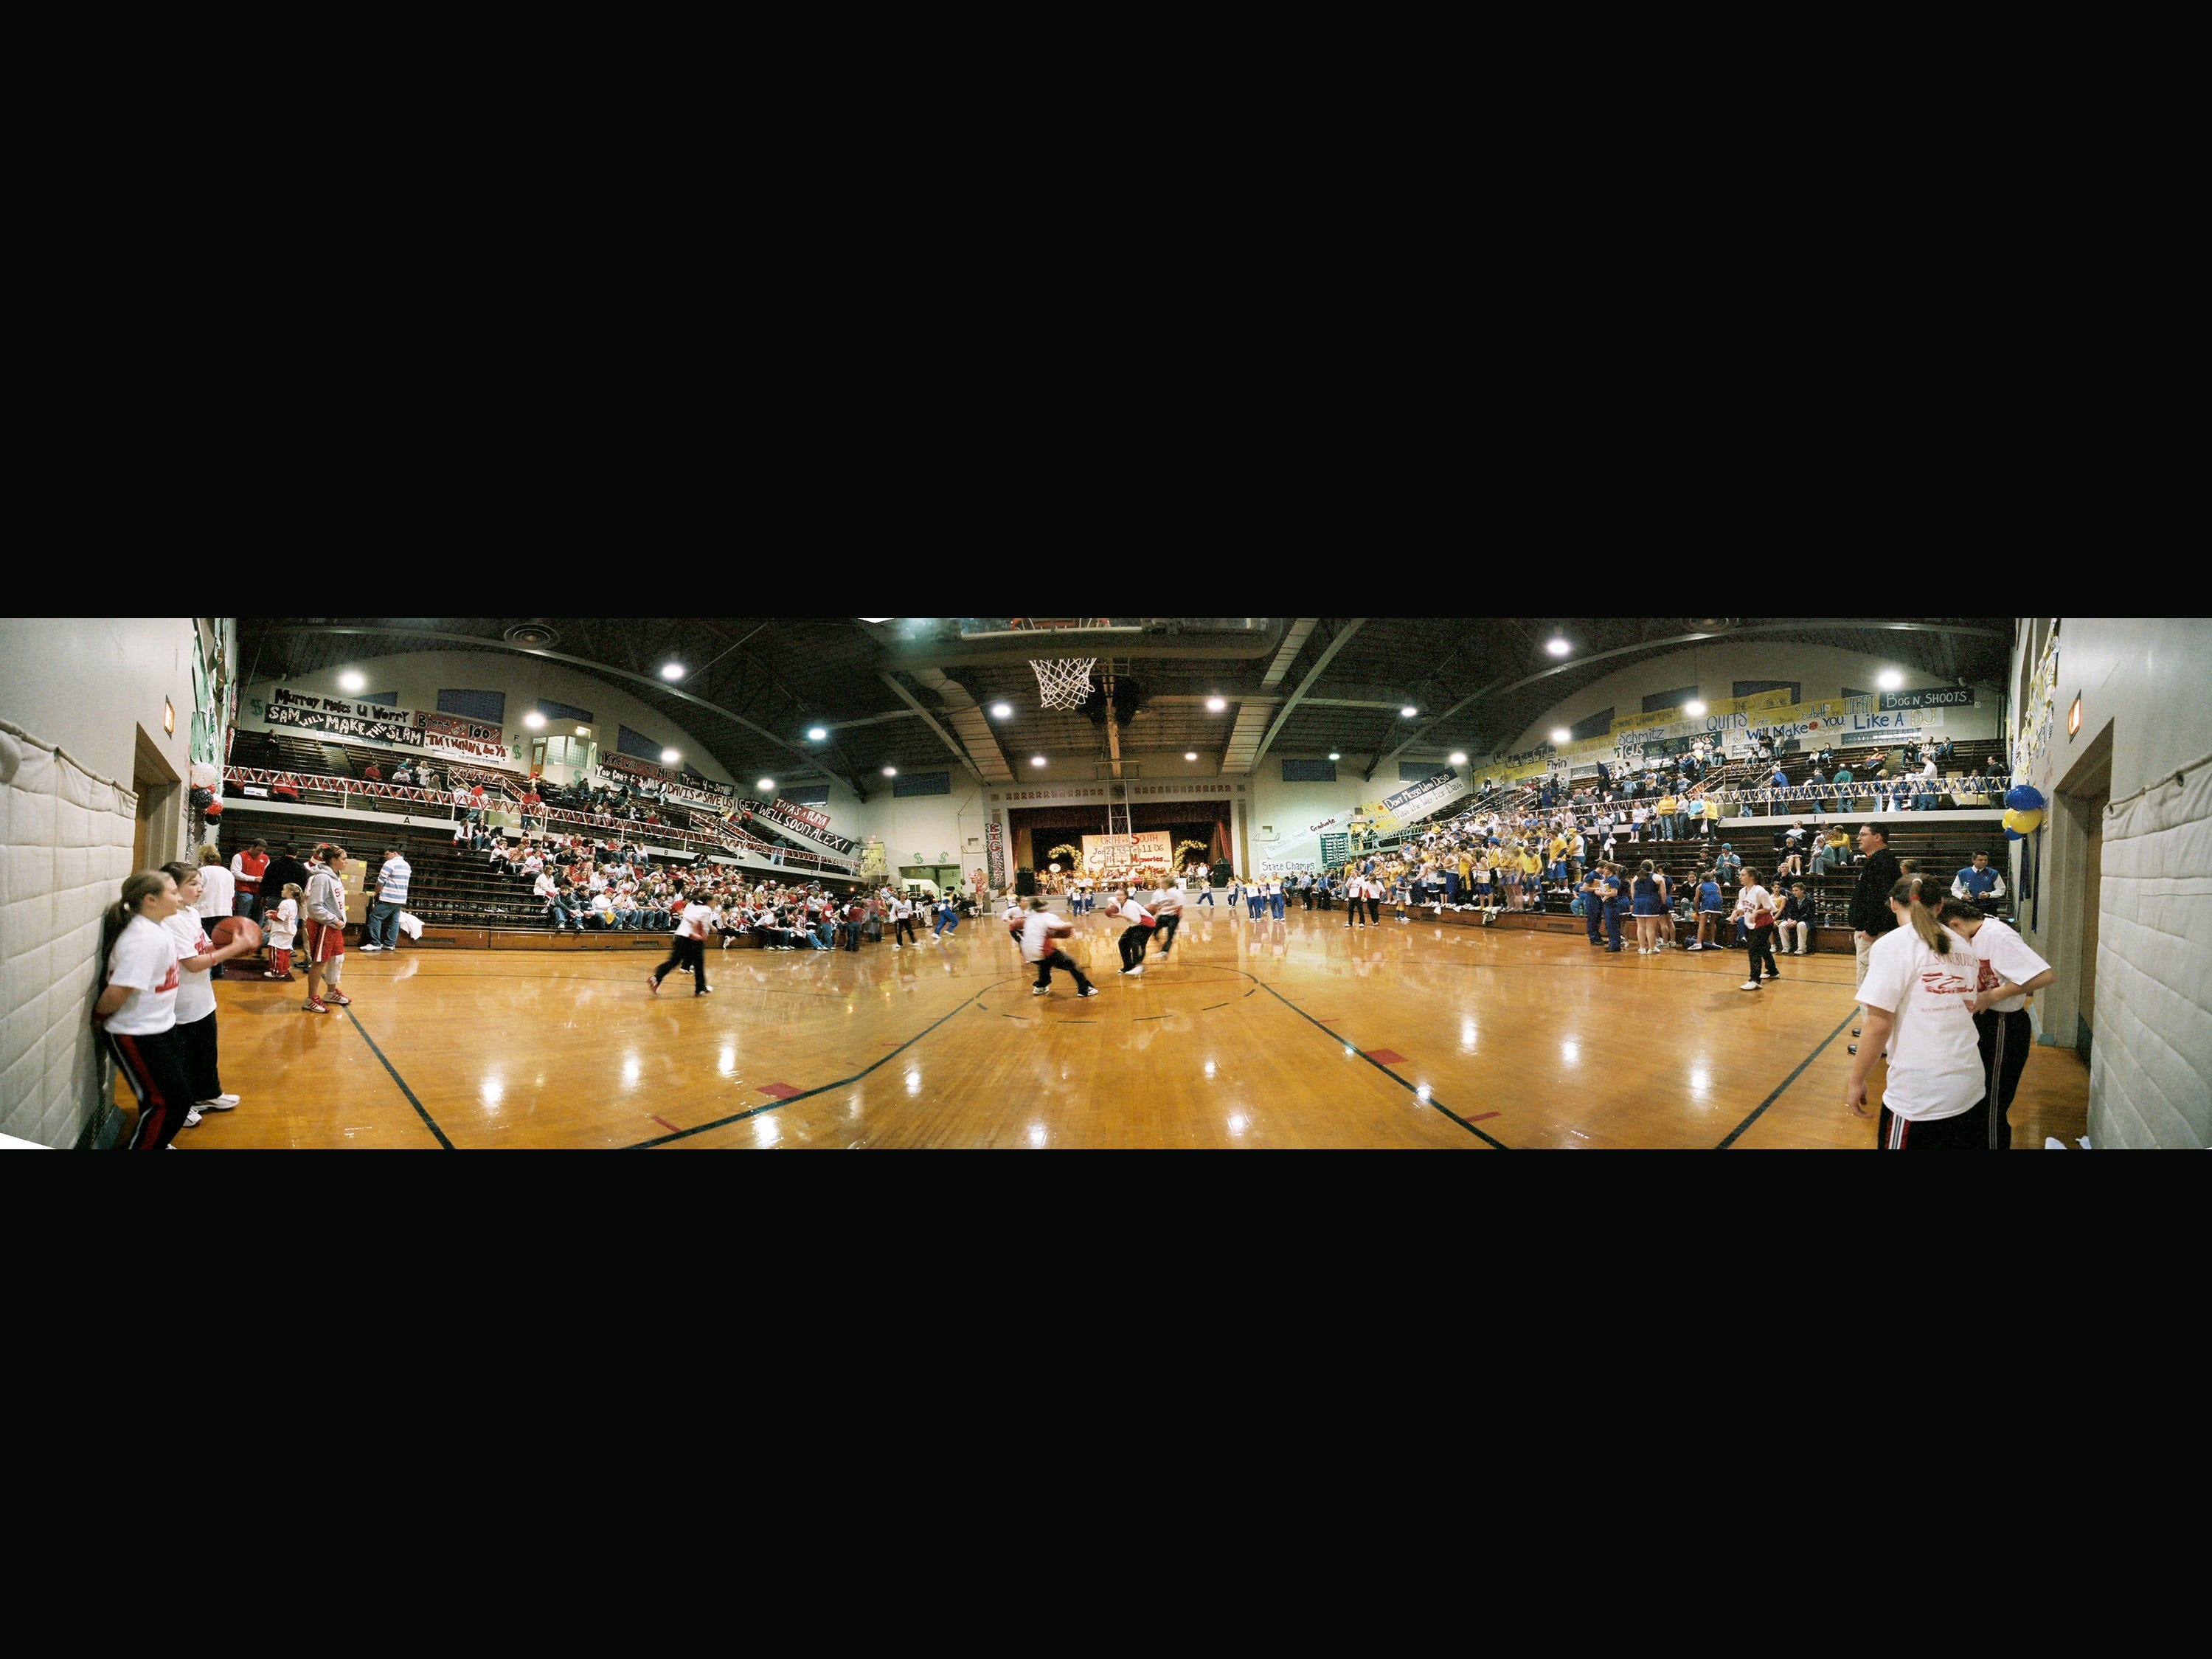 A panoramic inside the Sheboygan Armory during the last North South game in 2007